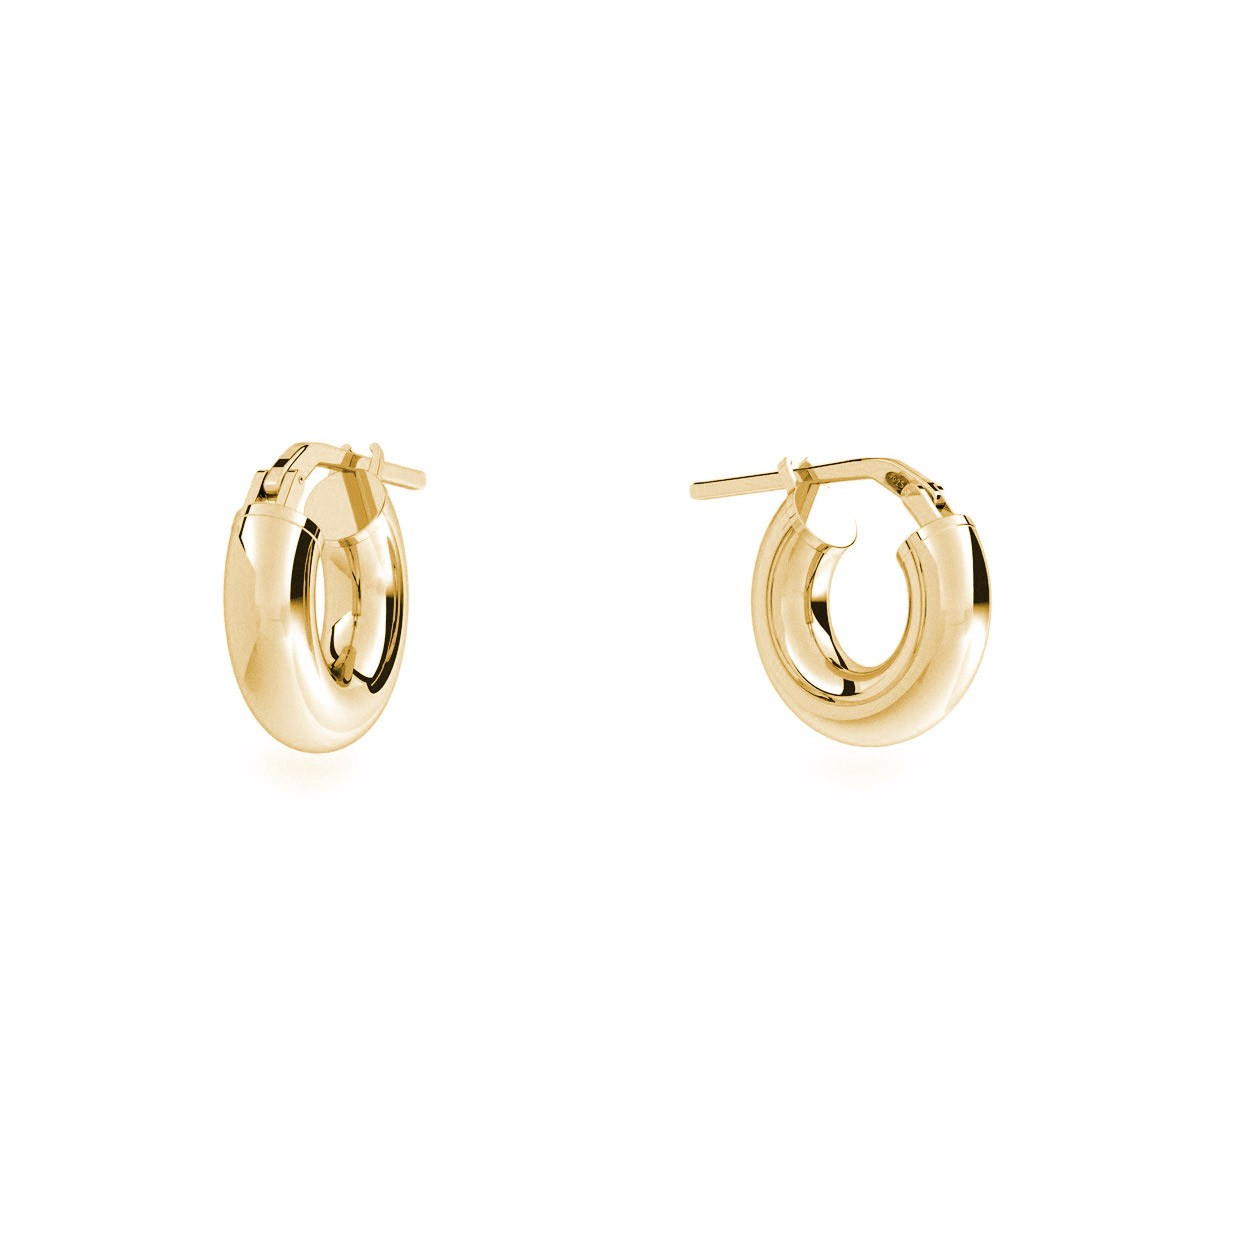 Round hoop earrings 2 cm with clasp, silver 925